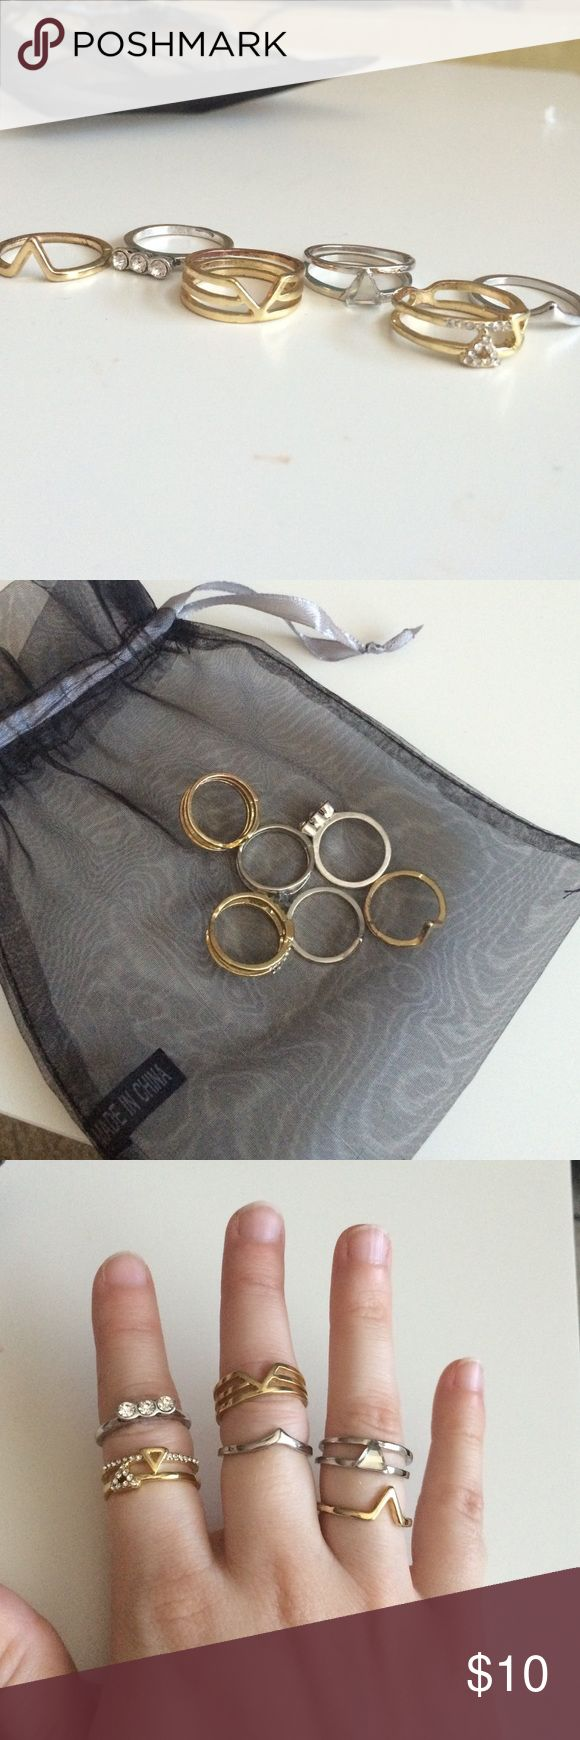 Buckle Festival Ring Set Set of 6 rings (3 silver, 3 gold) all size 7! Only worn once or twice. Like new condition and comes with black jewelry bag! Buckle Jewelry Rings